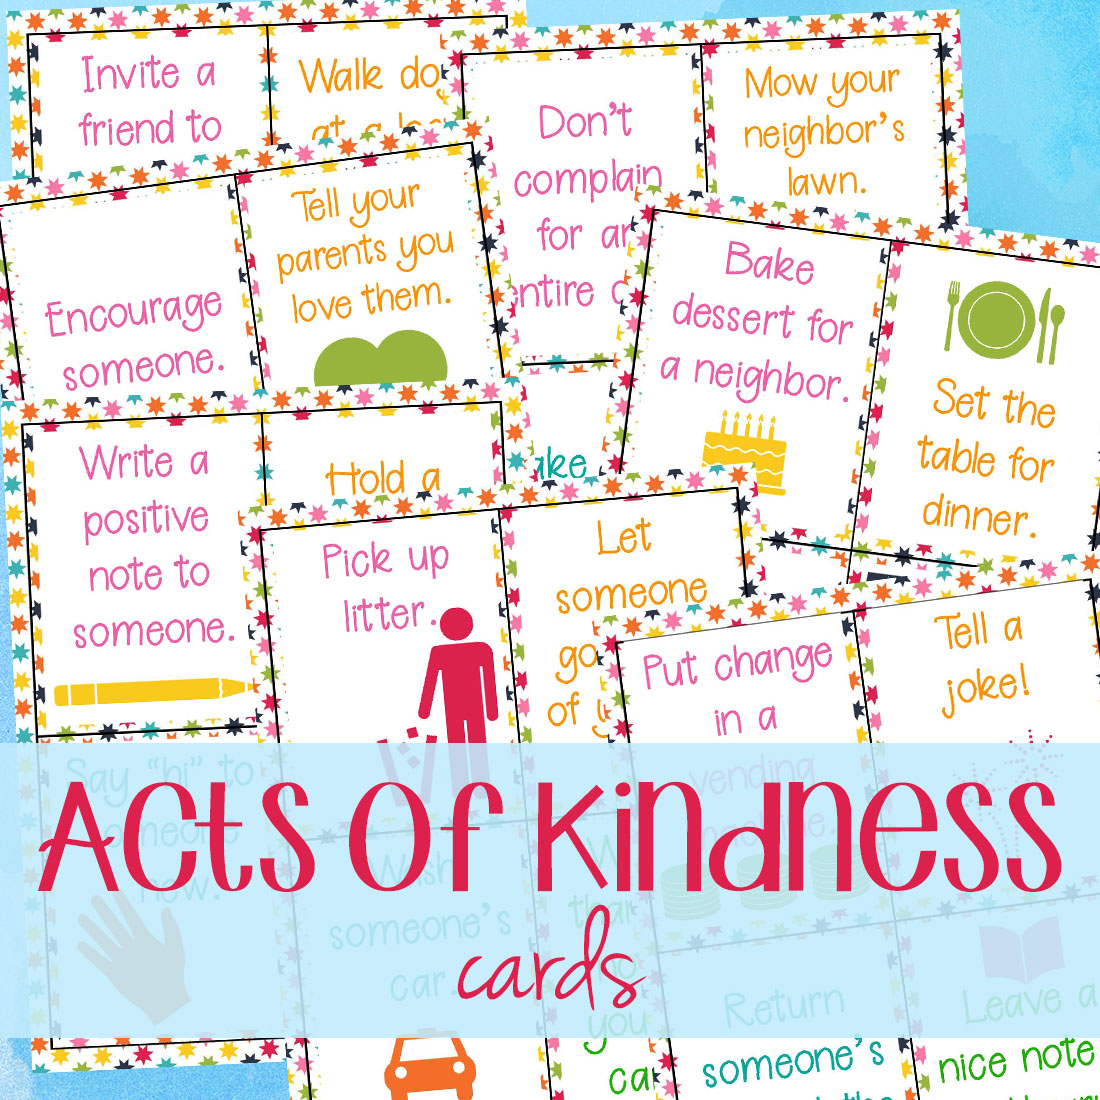 Random Acts of Kindness Week is almost here, are you ready? This is full of Acts of Kindness Ideas for this national week of spreading kindness, Here's everything you need to do your own Random Acts of Kindness with your kids, plus over 200 AWESOME KINDNESS IDEAS!